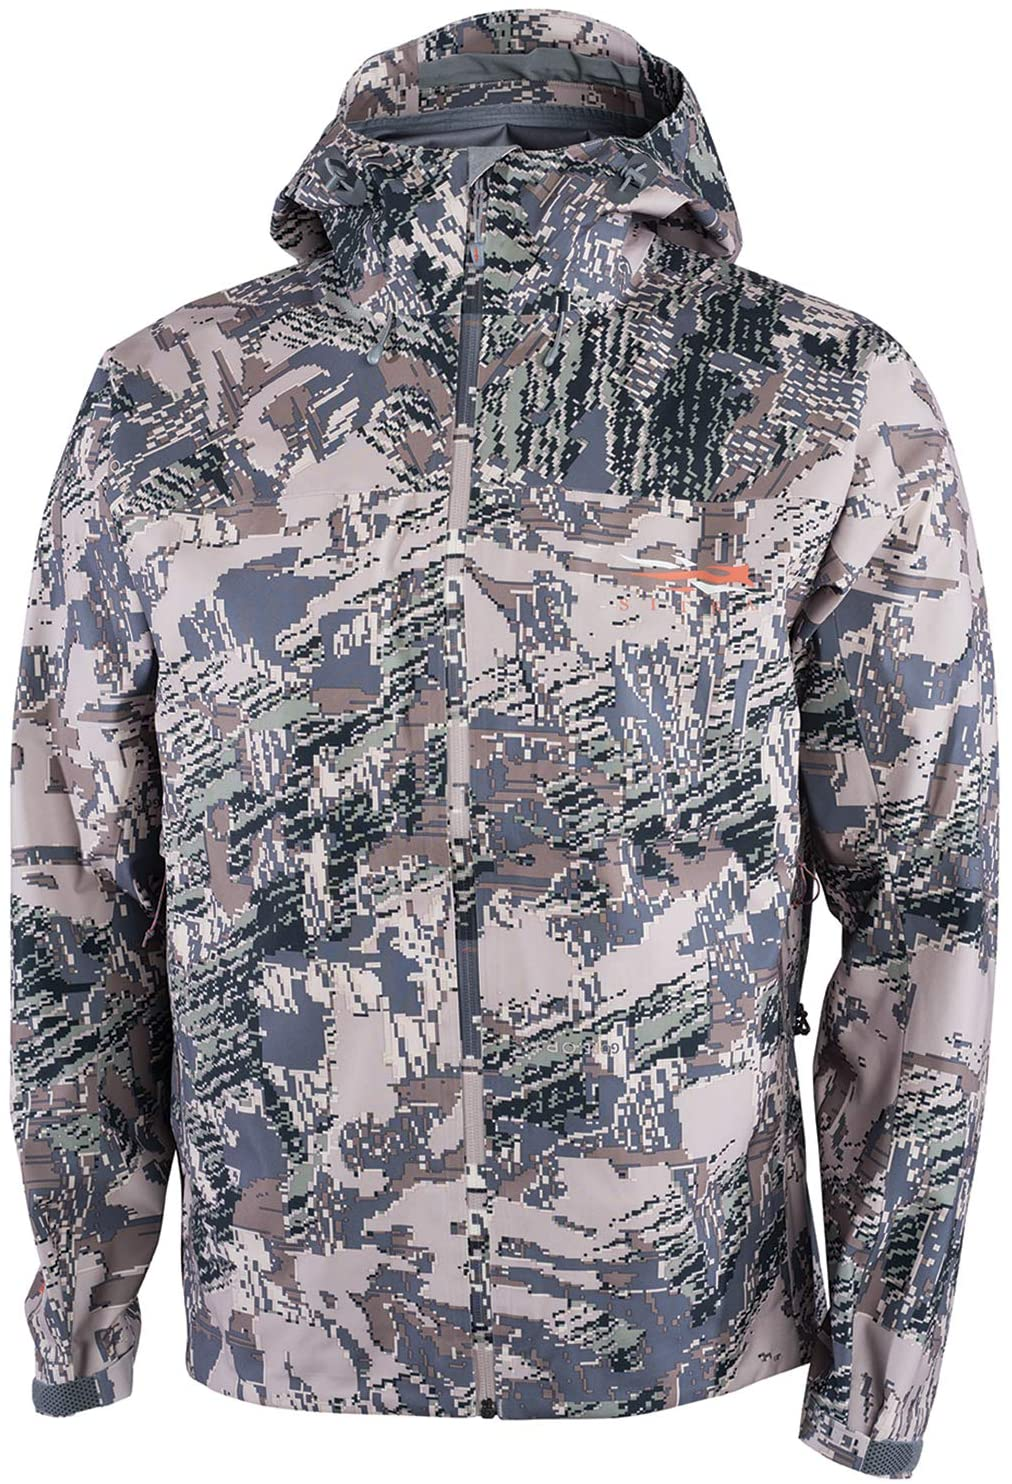 SITKA Gear New for 2019 Cloudburst Jacket